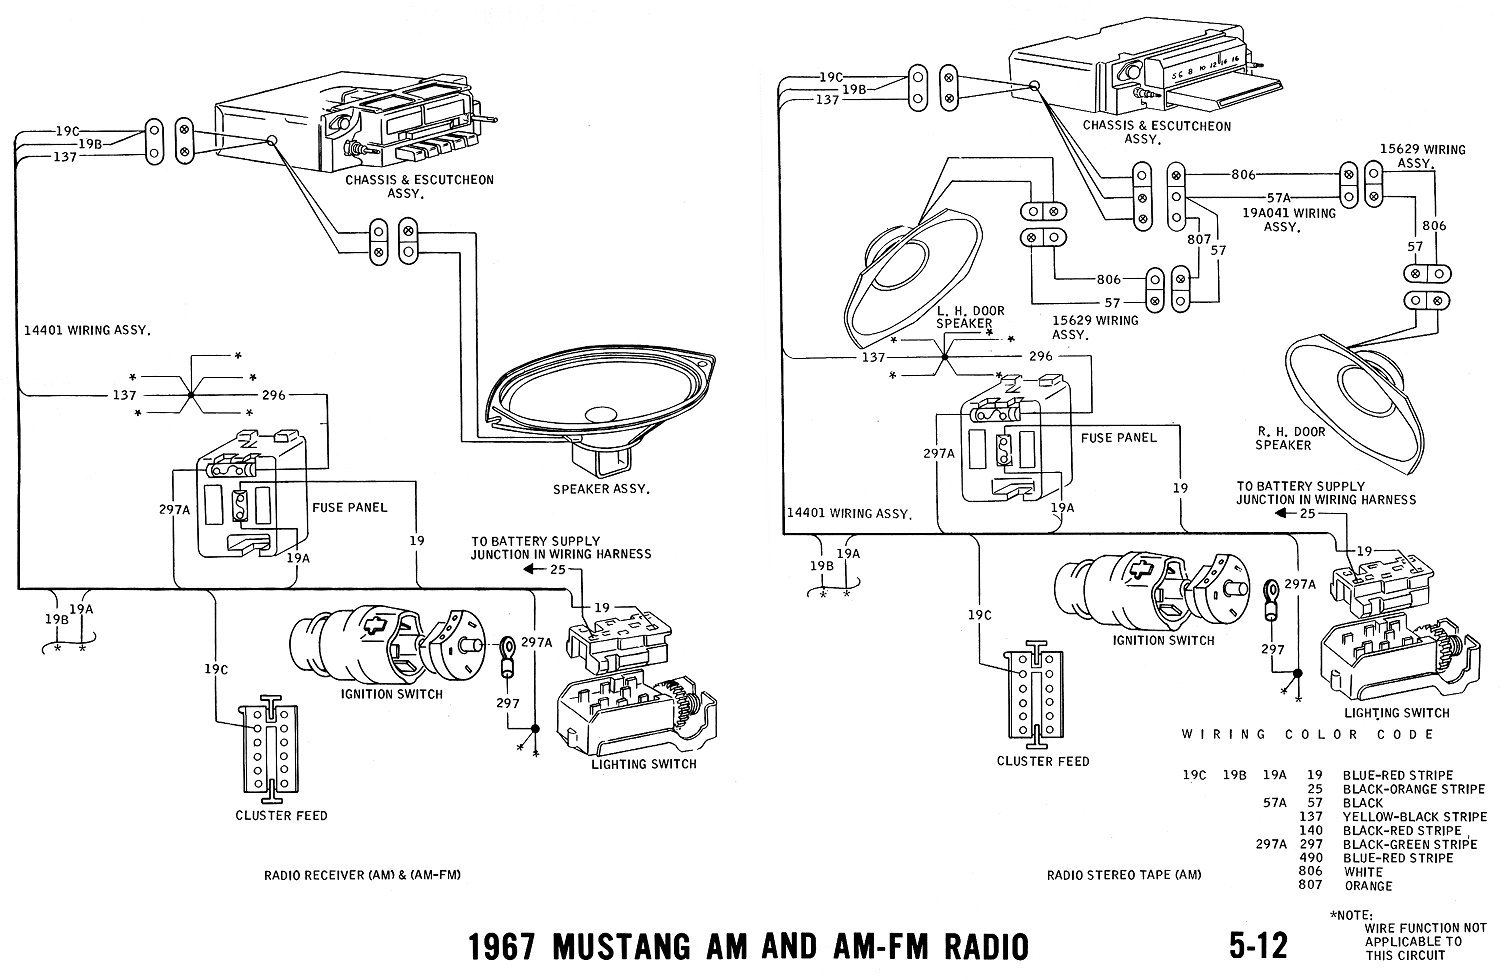 02 Mustang Radio Wiring Diagram